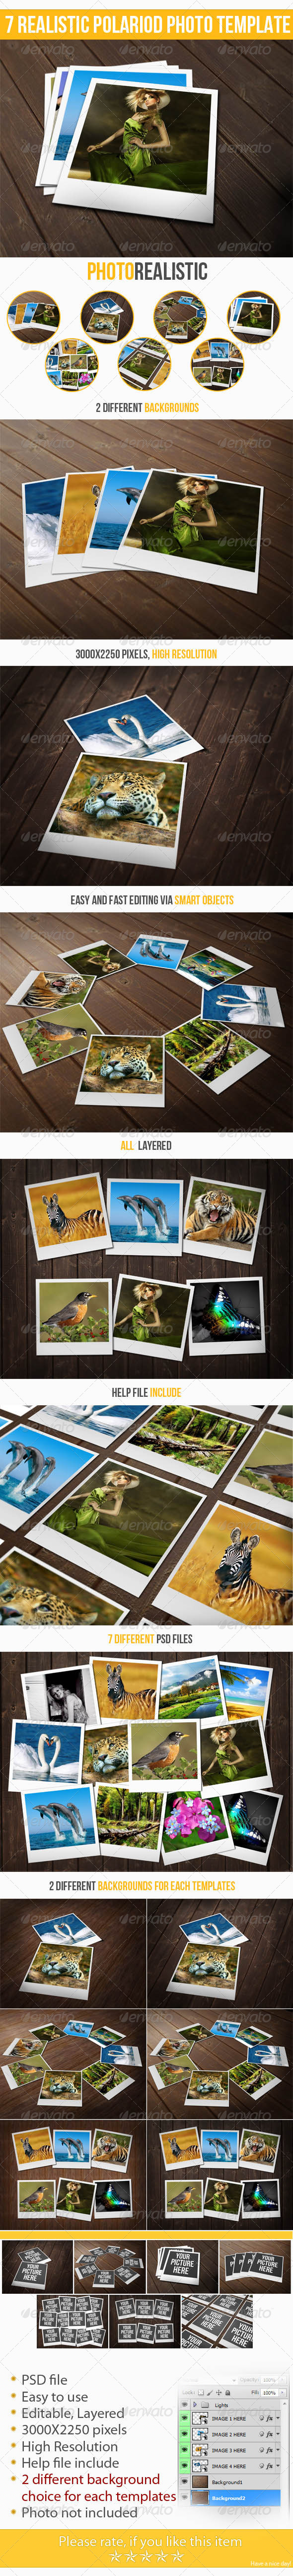 7 Realistic Instant Photo Templates - Miscellaneous Photo Templates